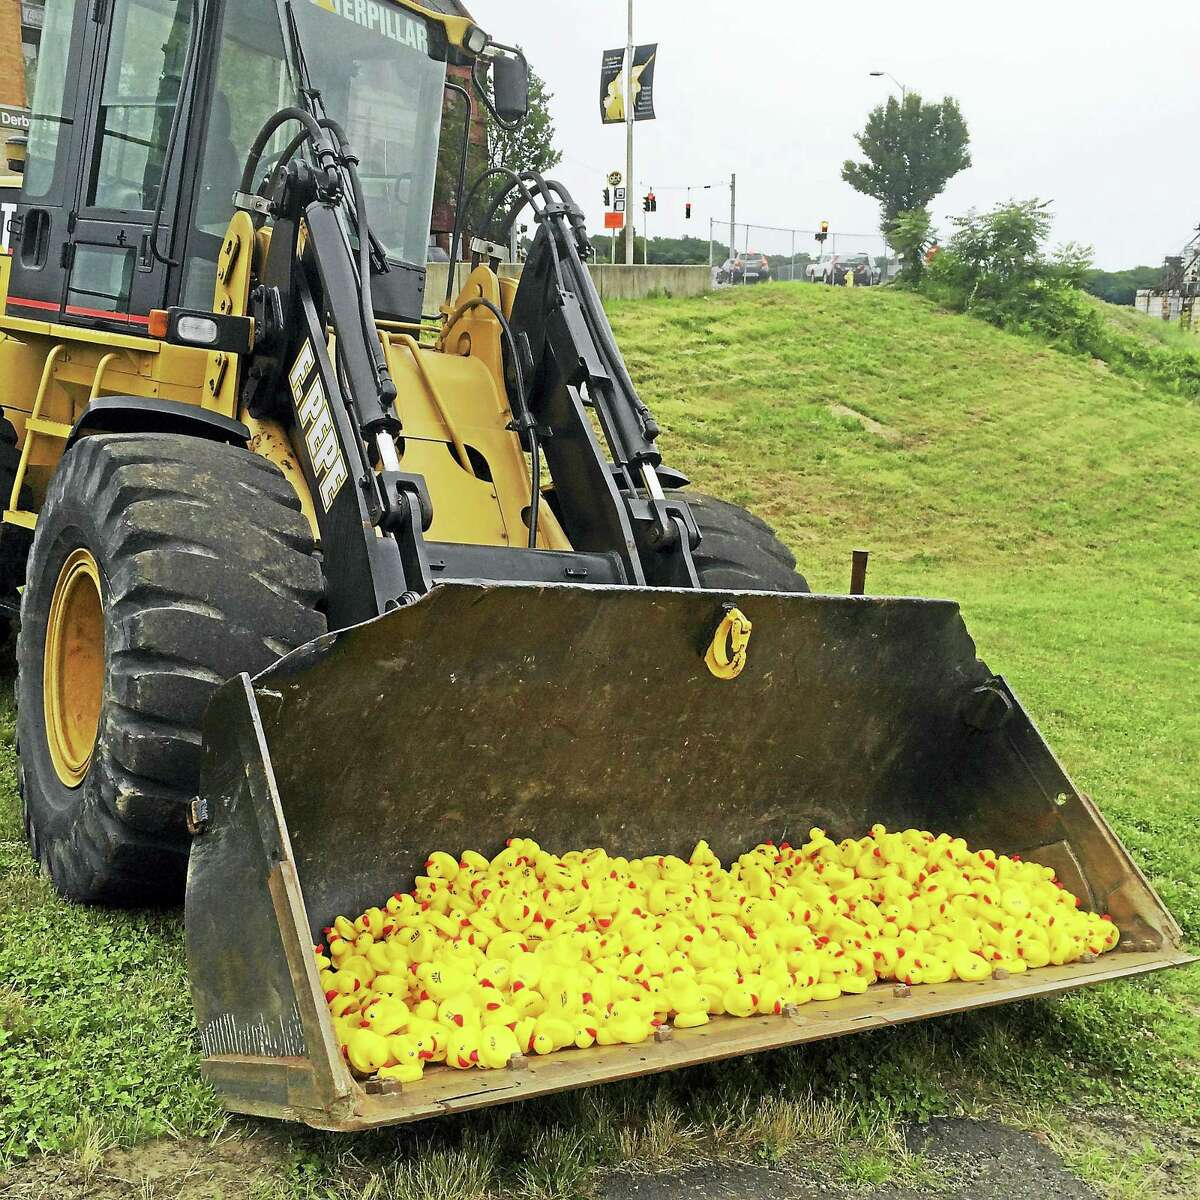 Derby Day festivities include a rubber duck race down in the Housatonic River.